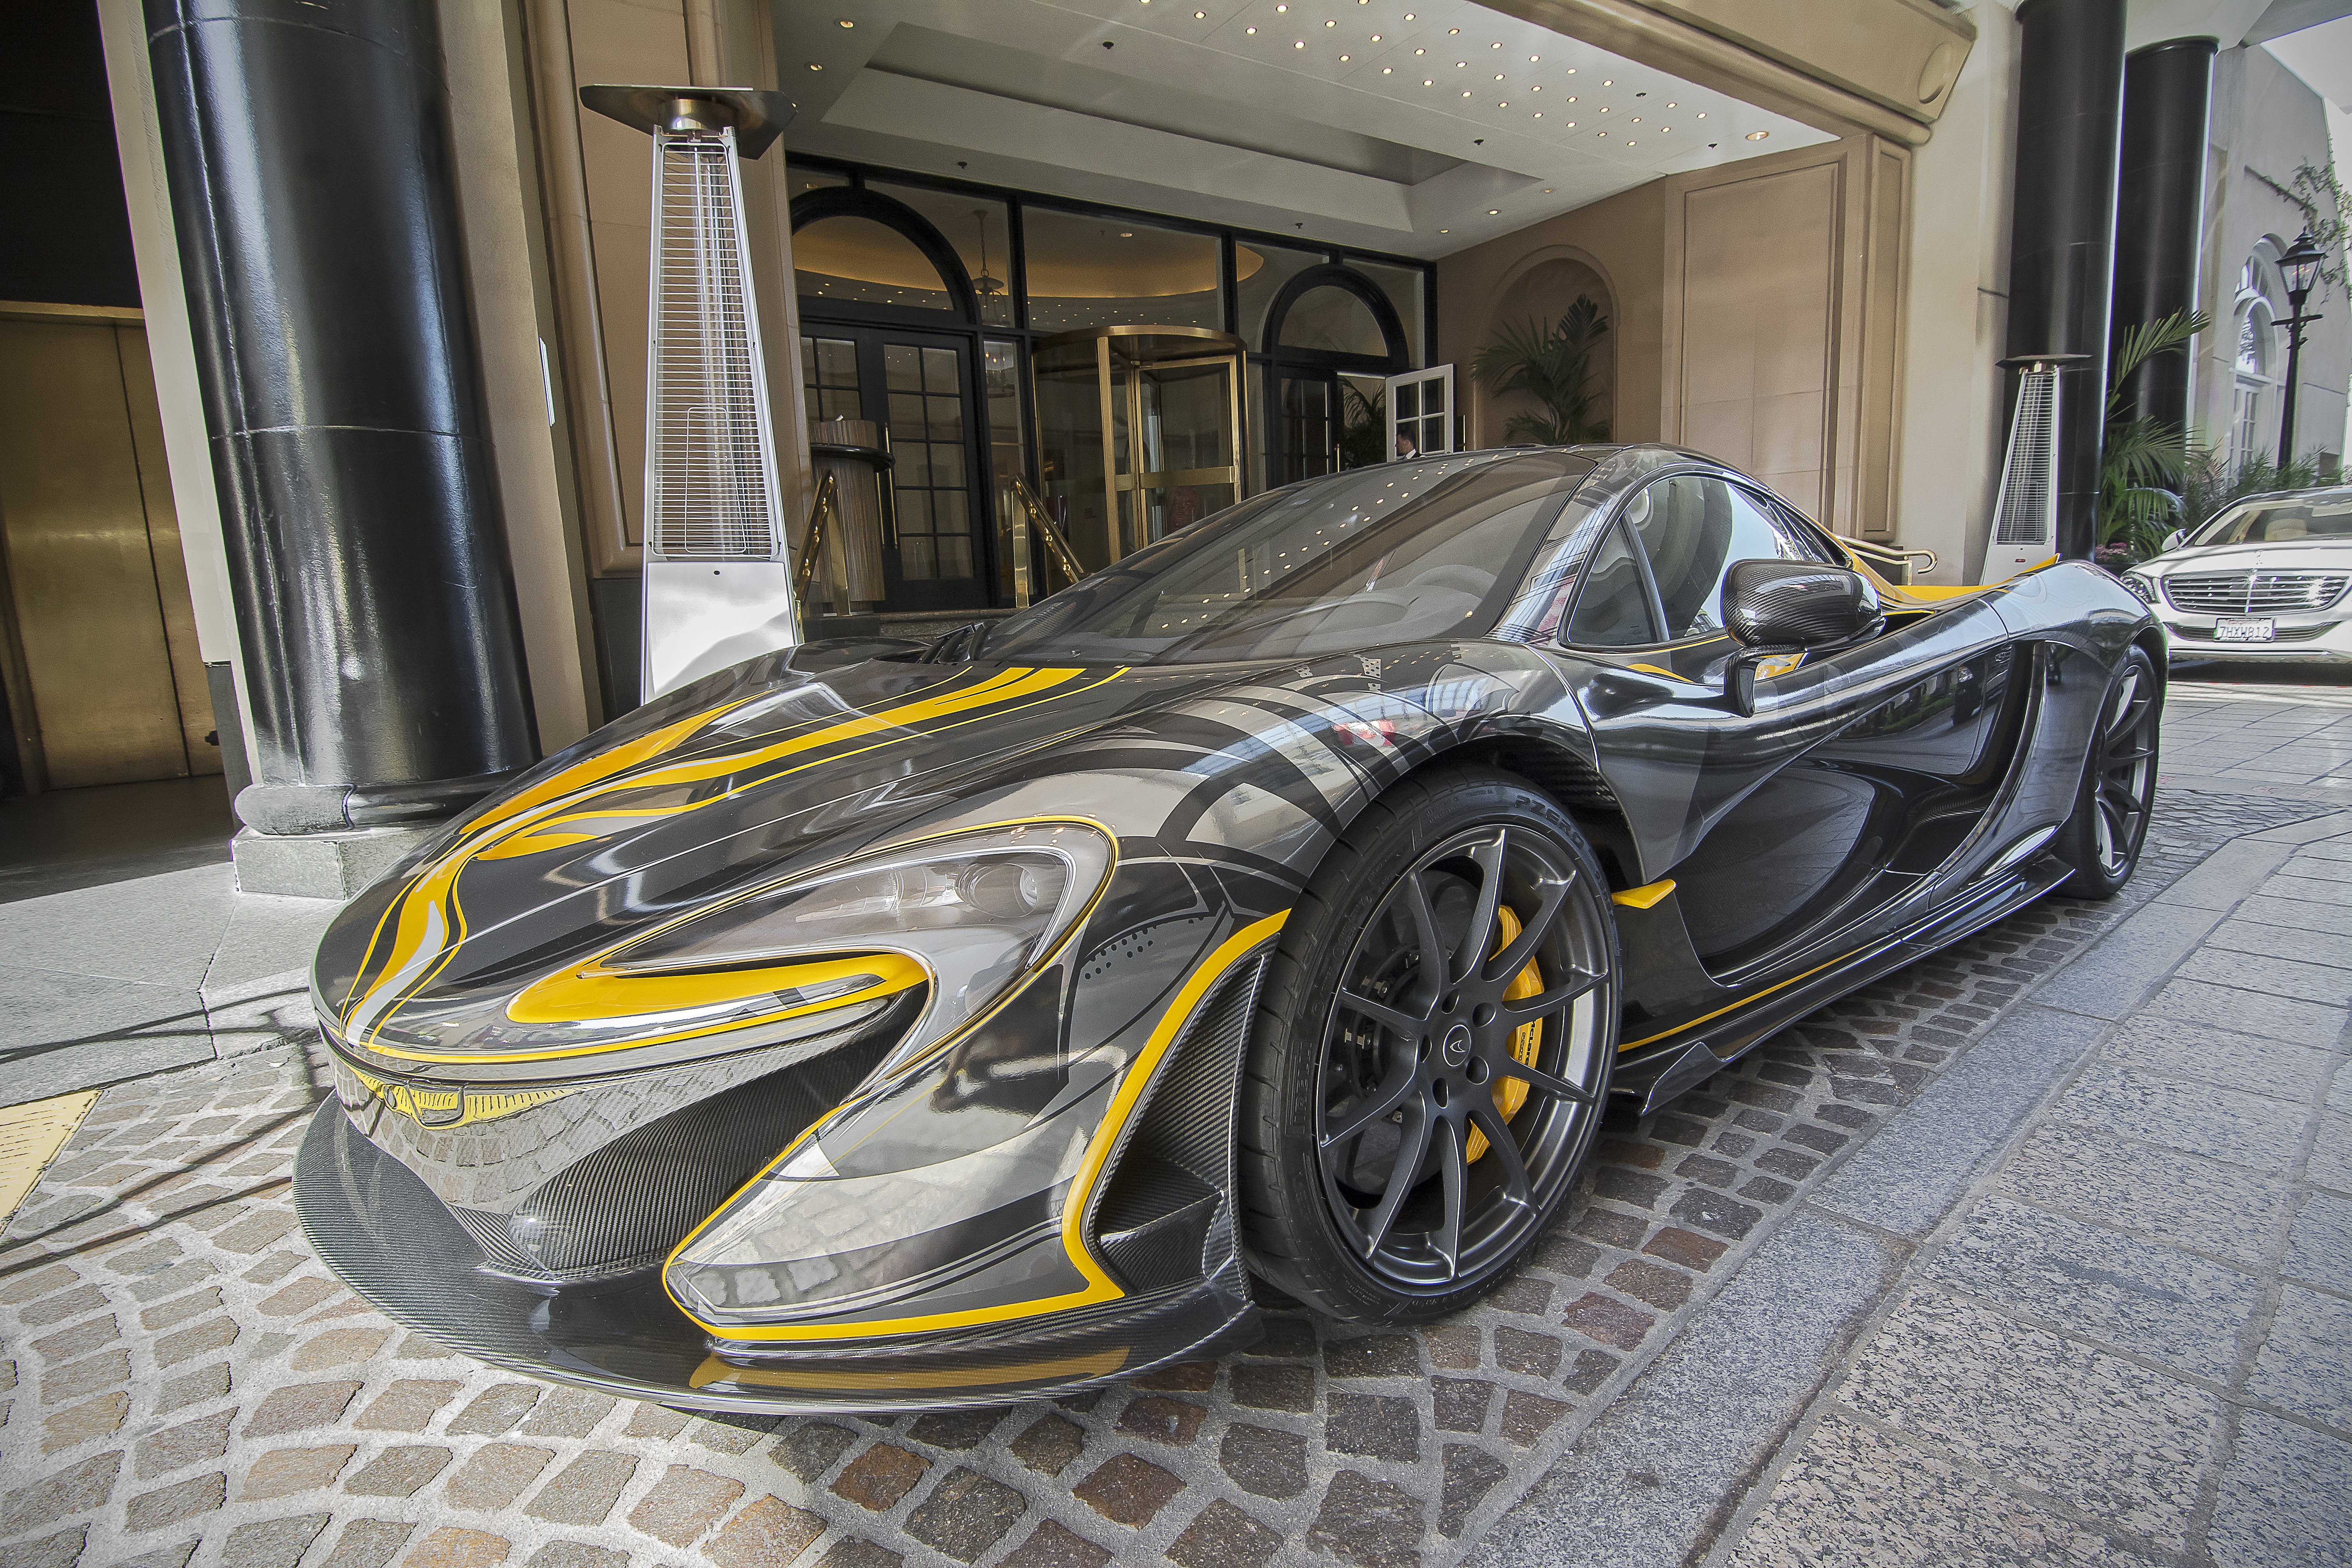 FileWrapped McLaren P1 17233625242